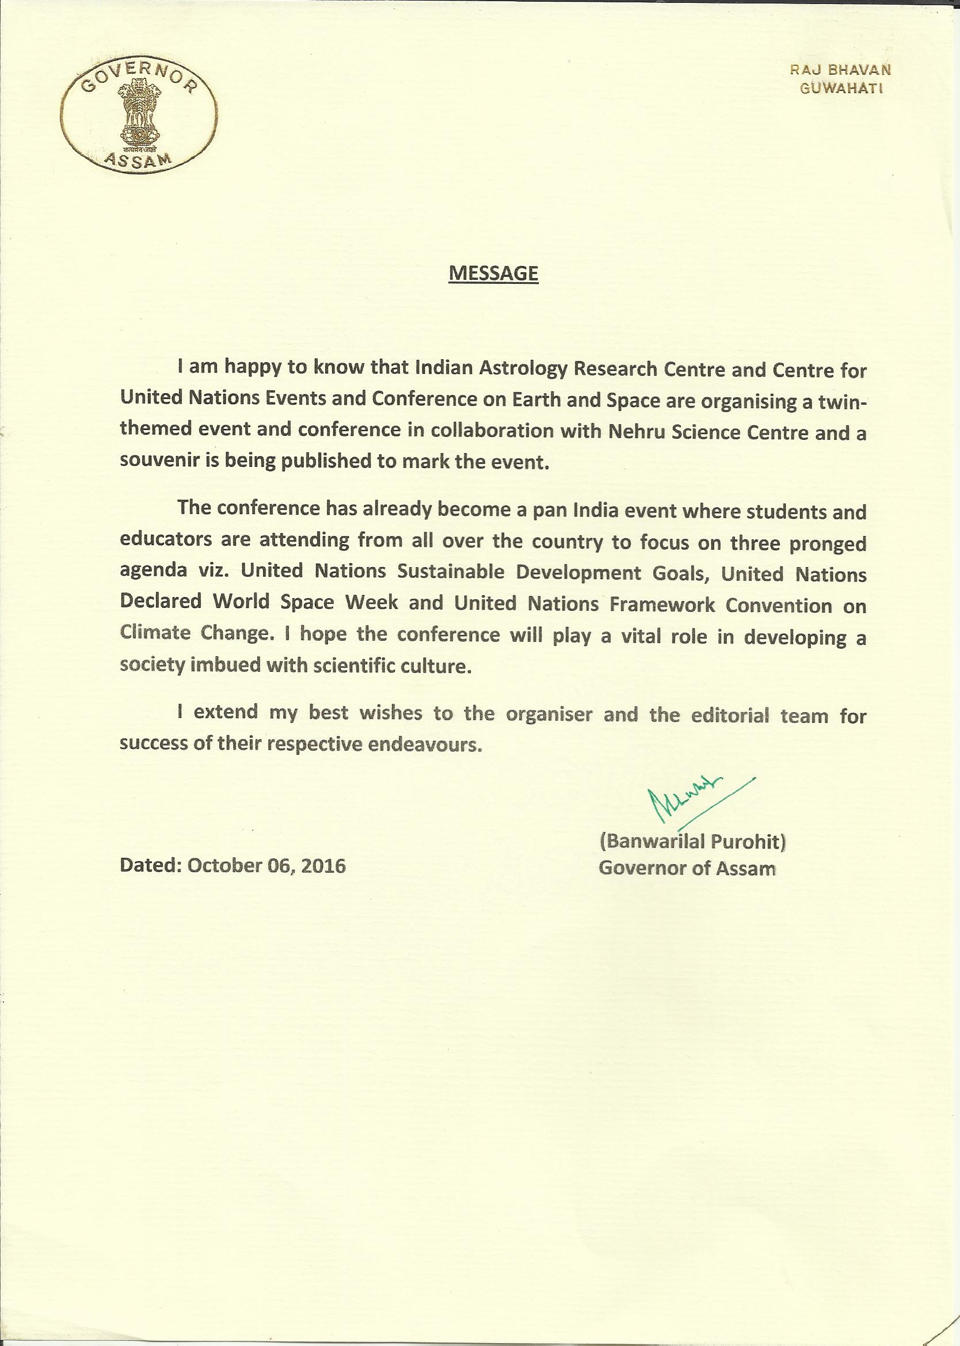 Message-Governor-of-Assam